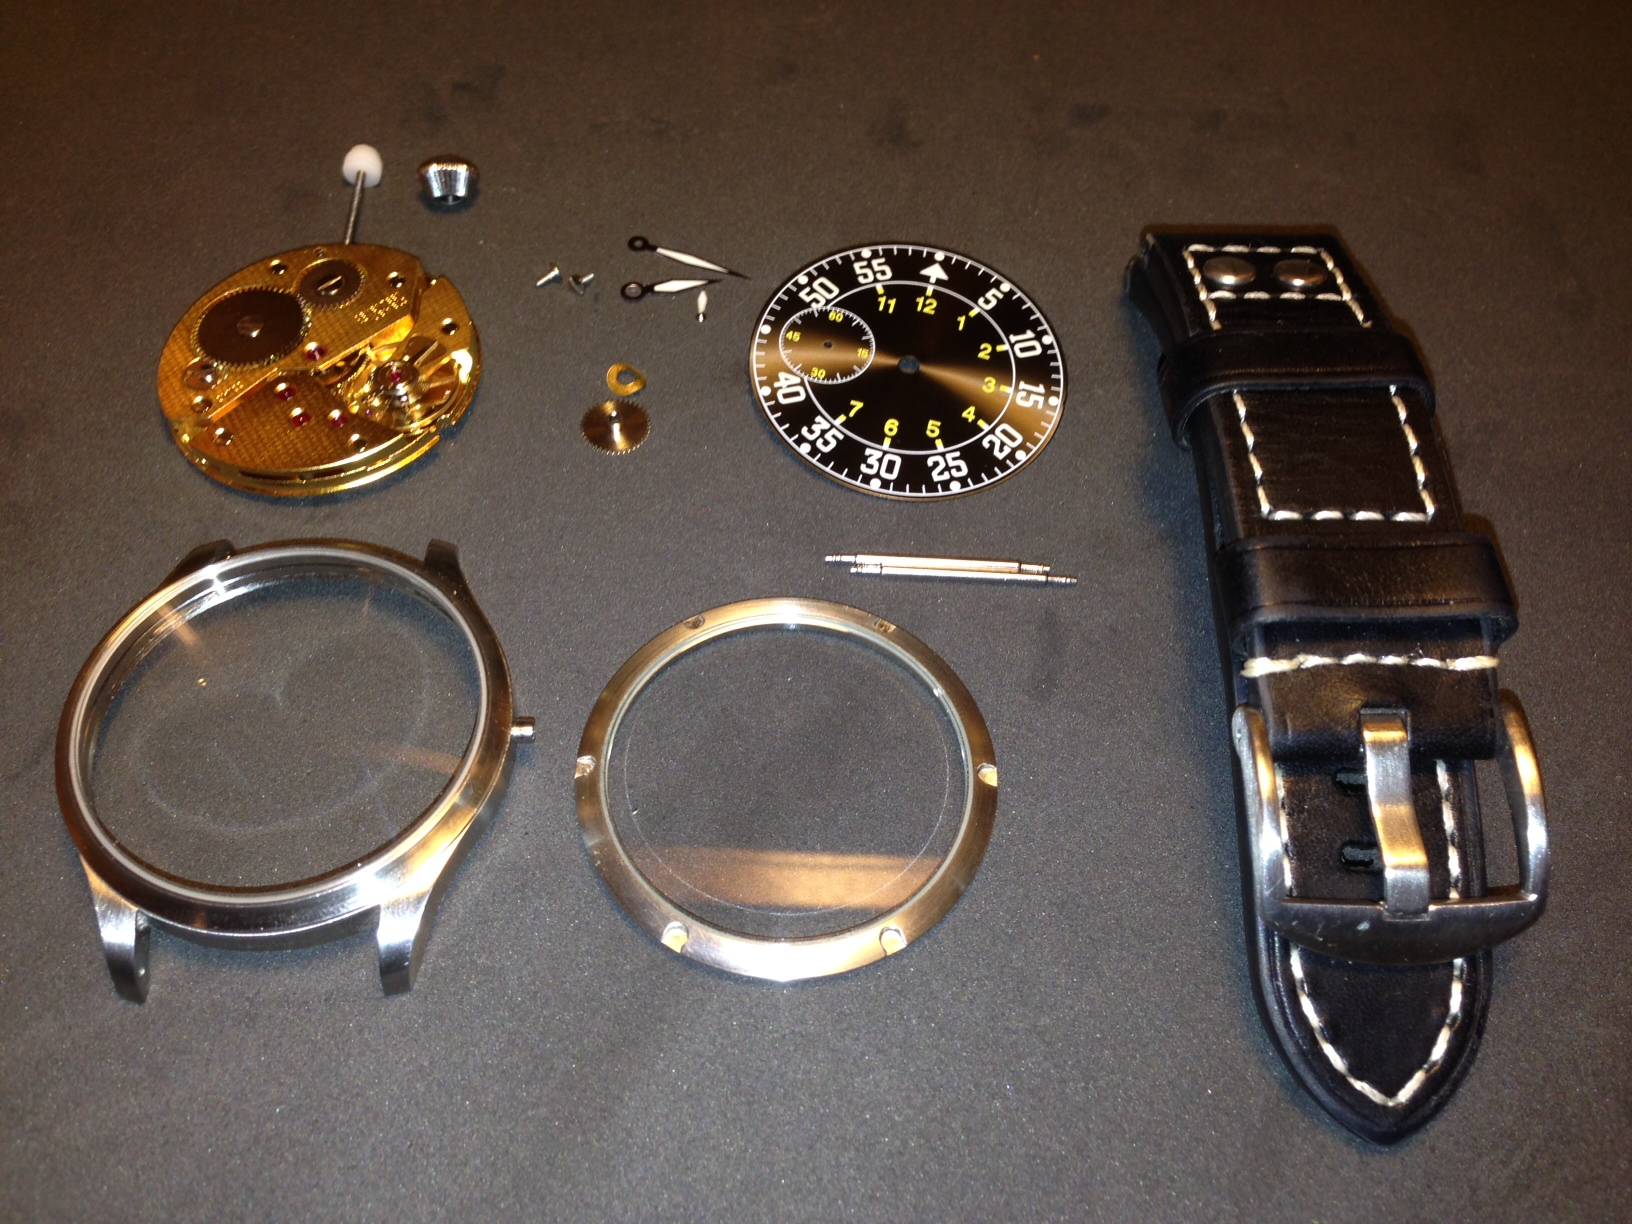 How to make watches by yourself - some tips for beginners